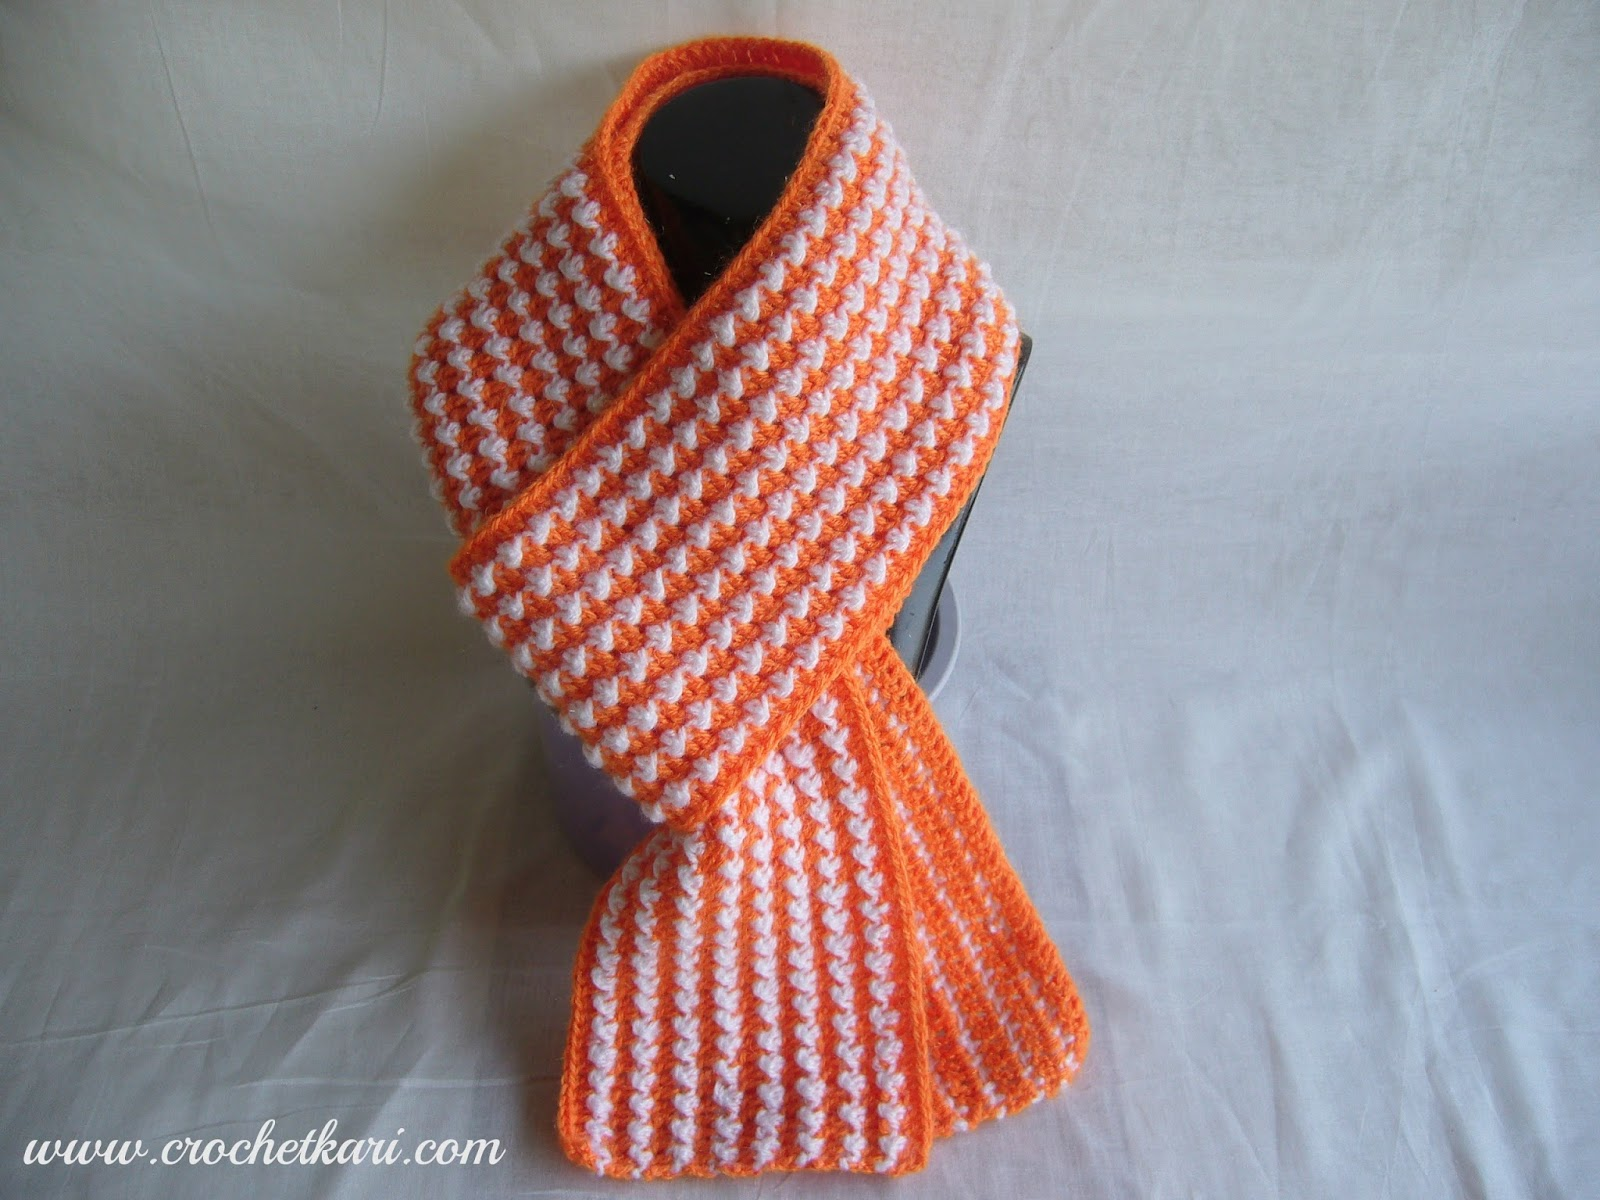 orange crochet scarf crochetkari